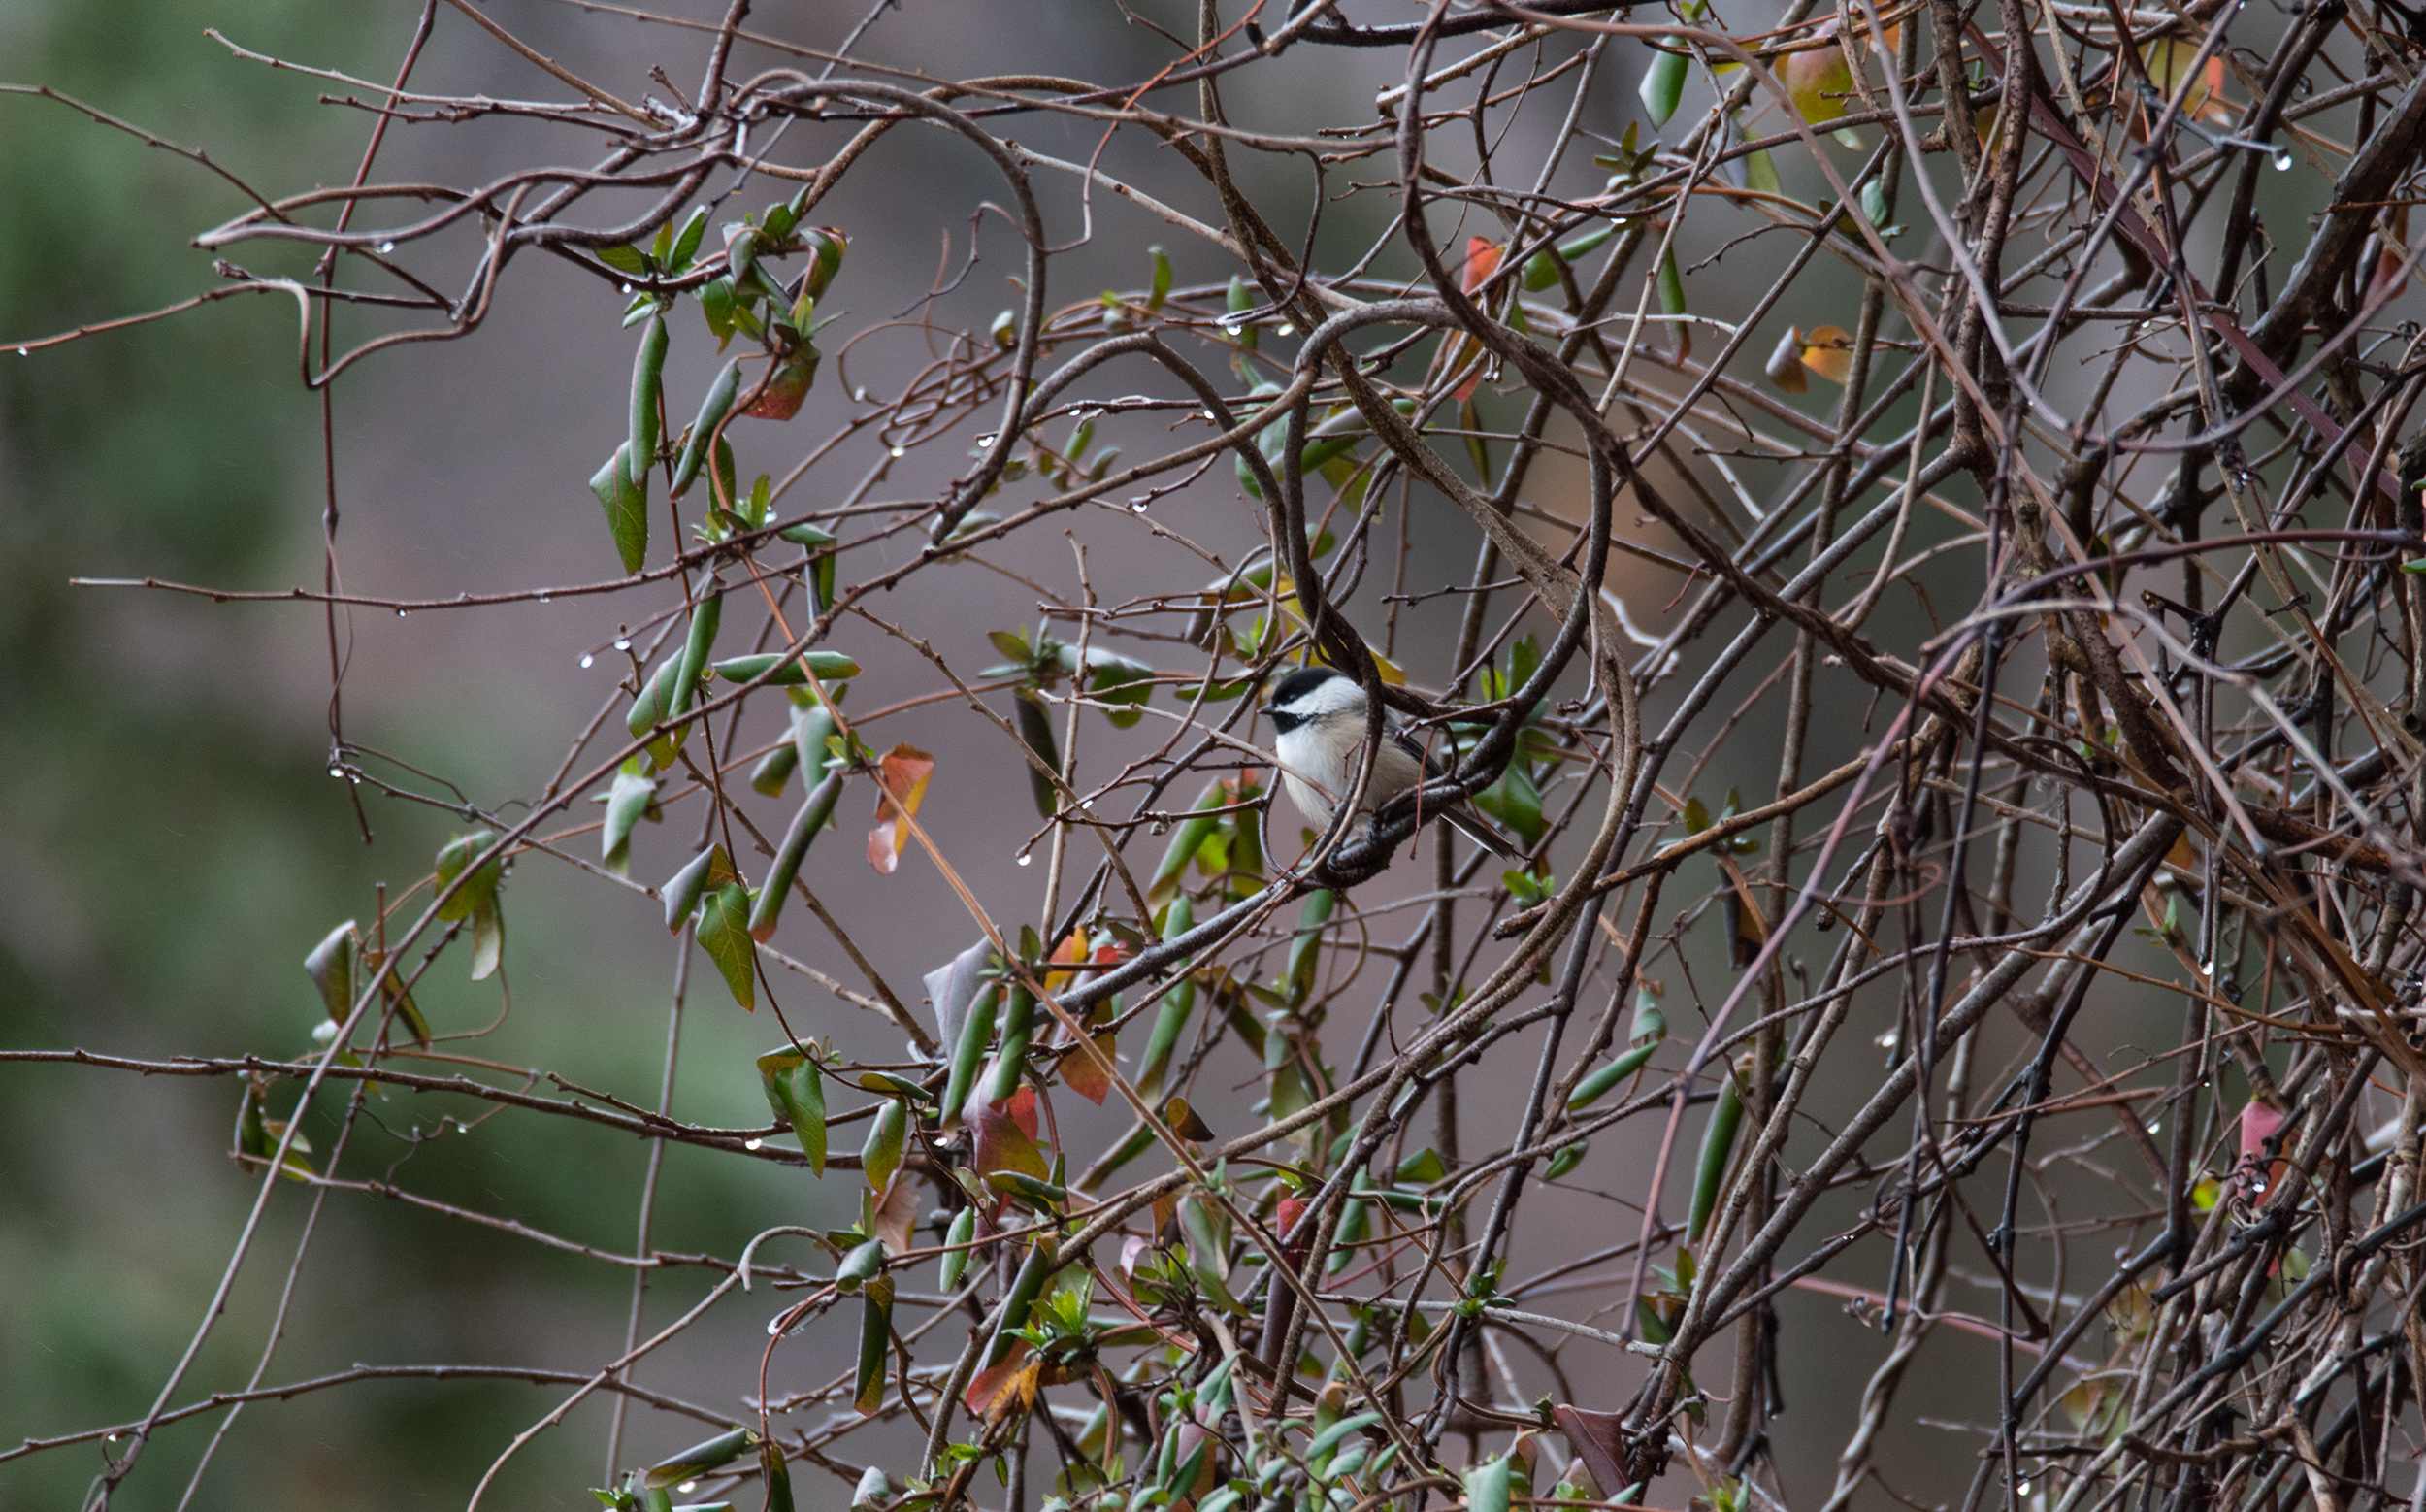 Black-capped Chickadee, アメリカコガラ, Piermont, NY, United States